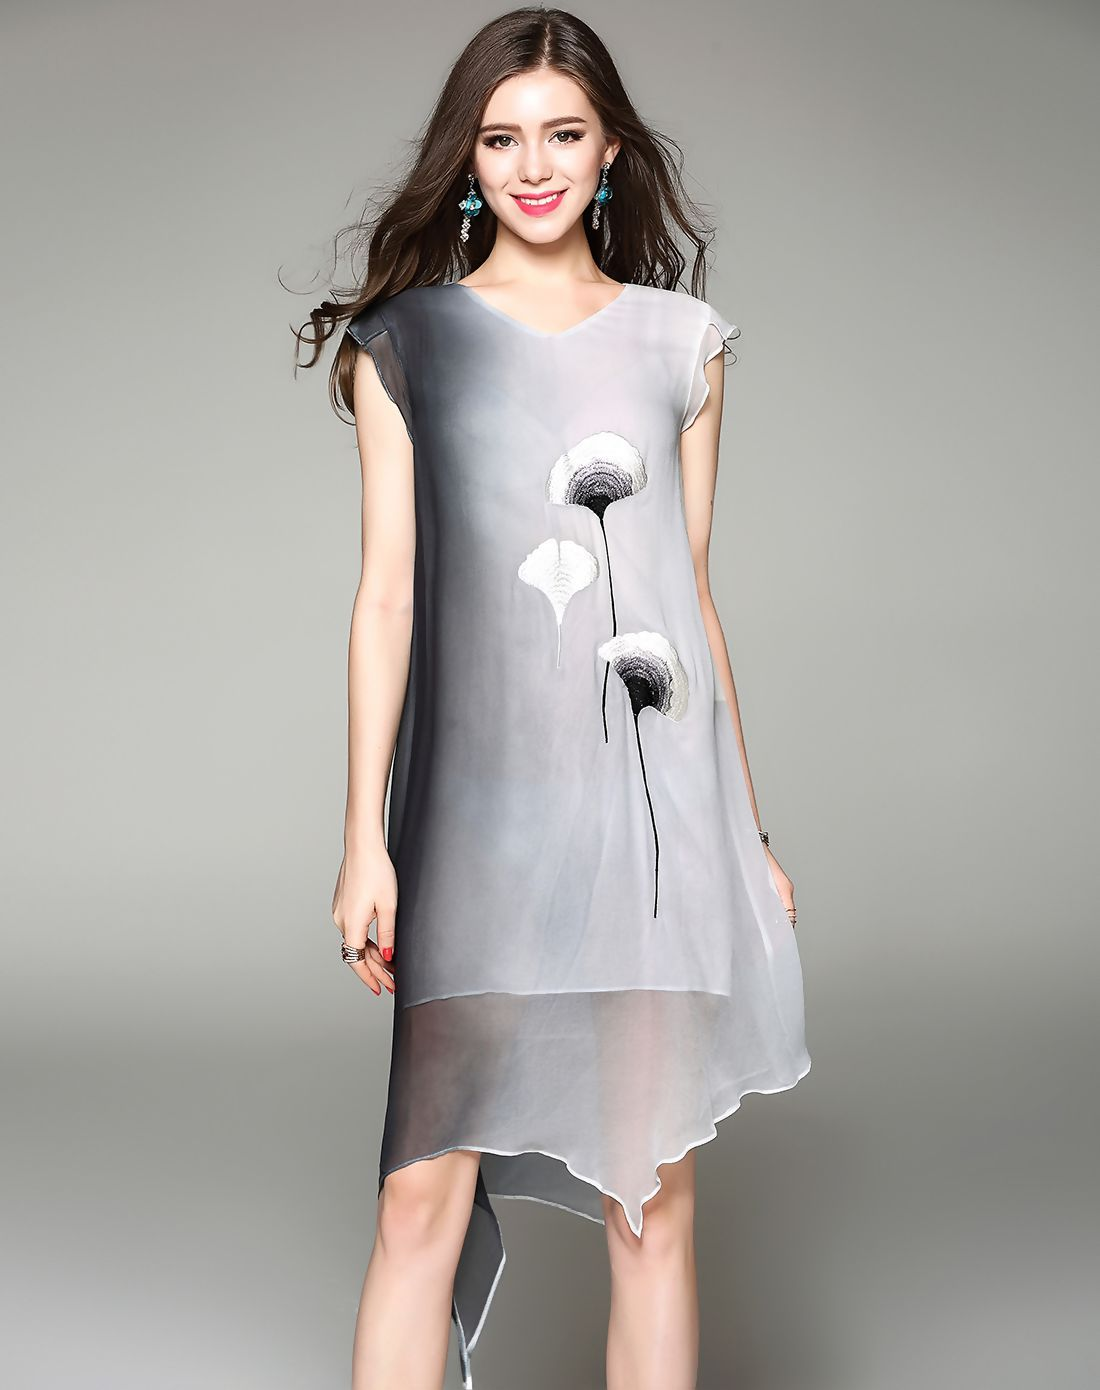 #VIPme Gray Silk Embroidery Cap Sleeve Asymmetrical Dress ❤️ Get more outfit ideas and style inspiration from fashion designers at VIPme.com.